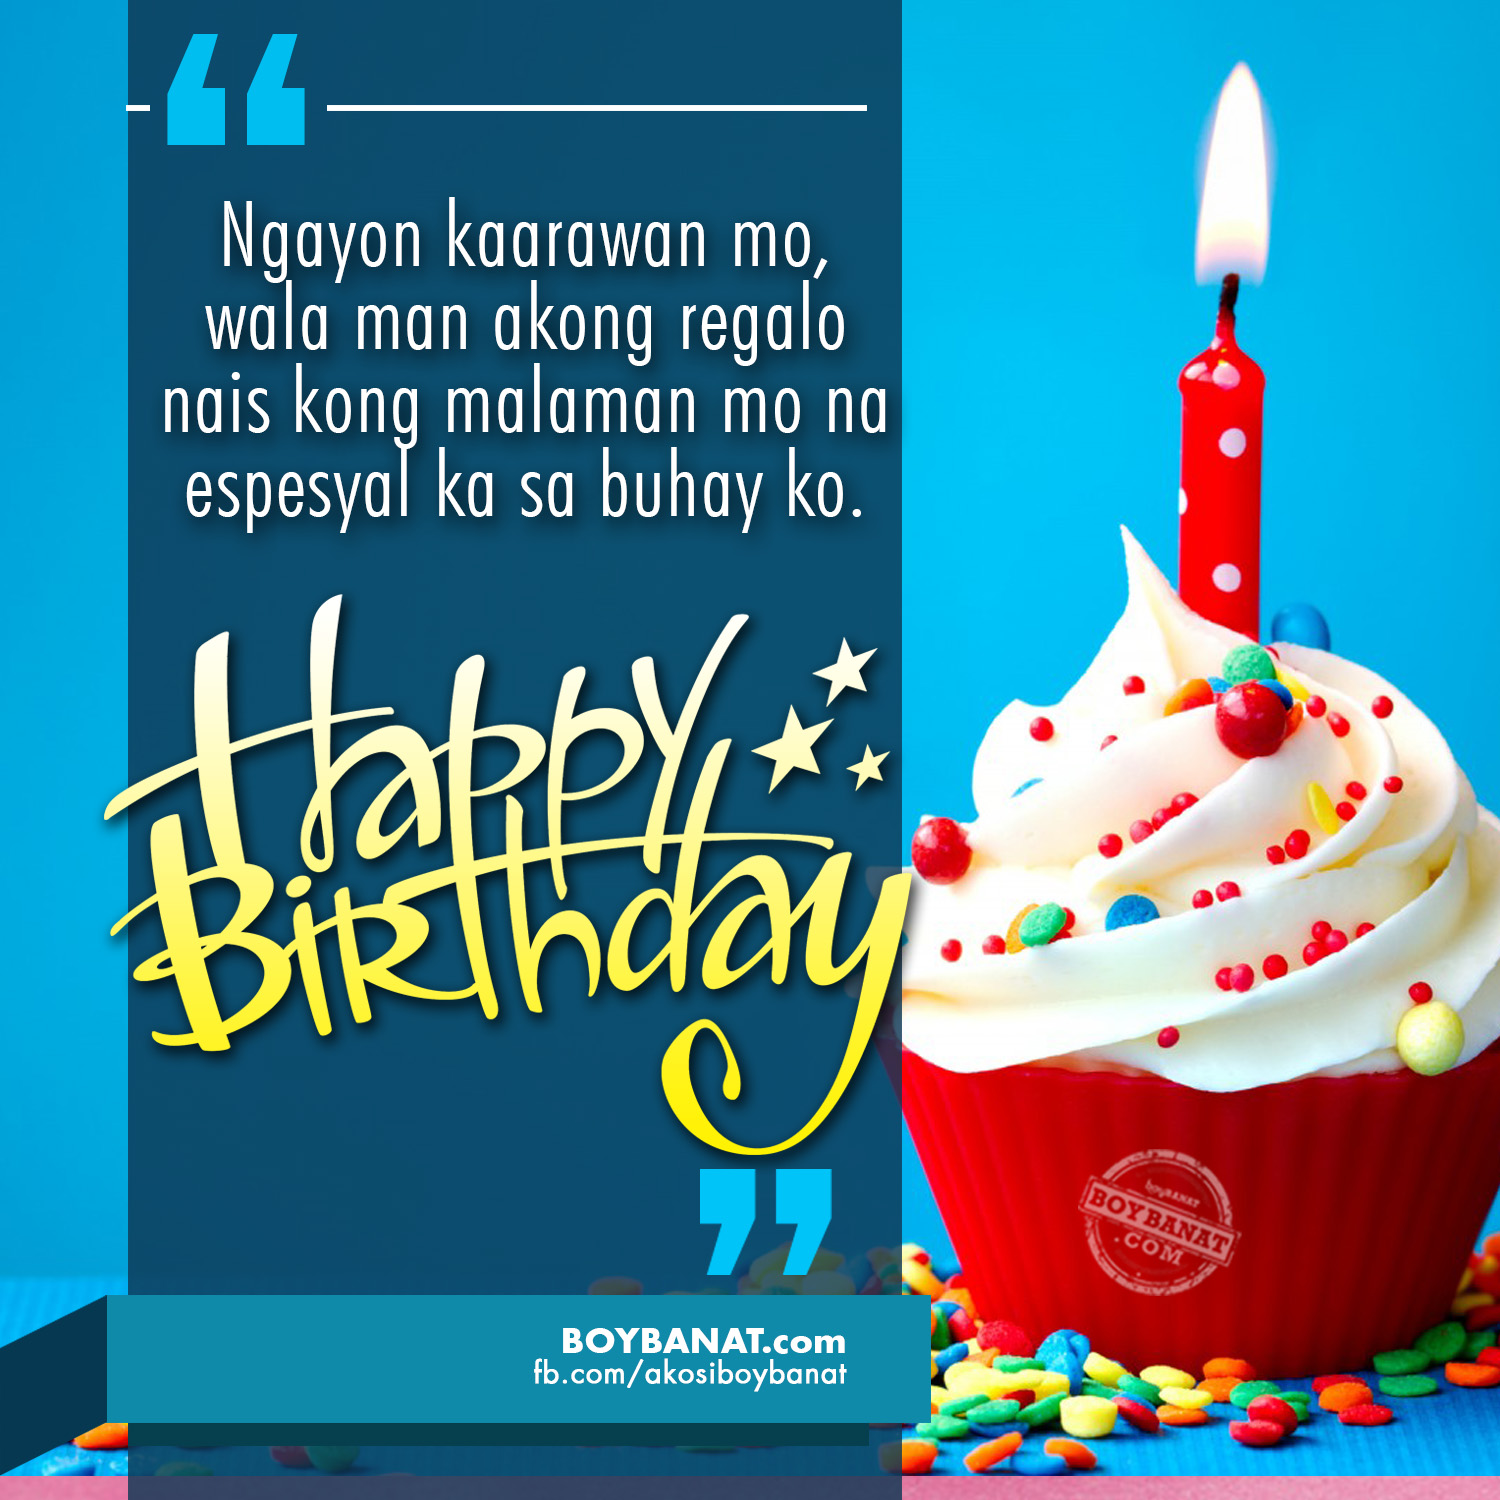 Funny happy birthday message to a friend tagalog ltt funny happy birthday message to a friend tagalog m4hsunfo